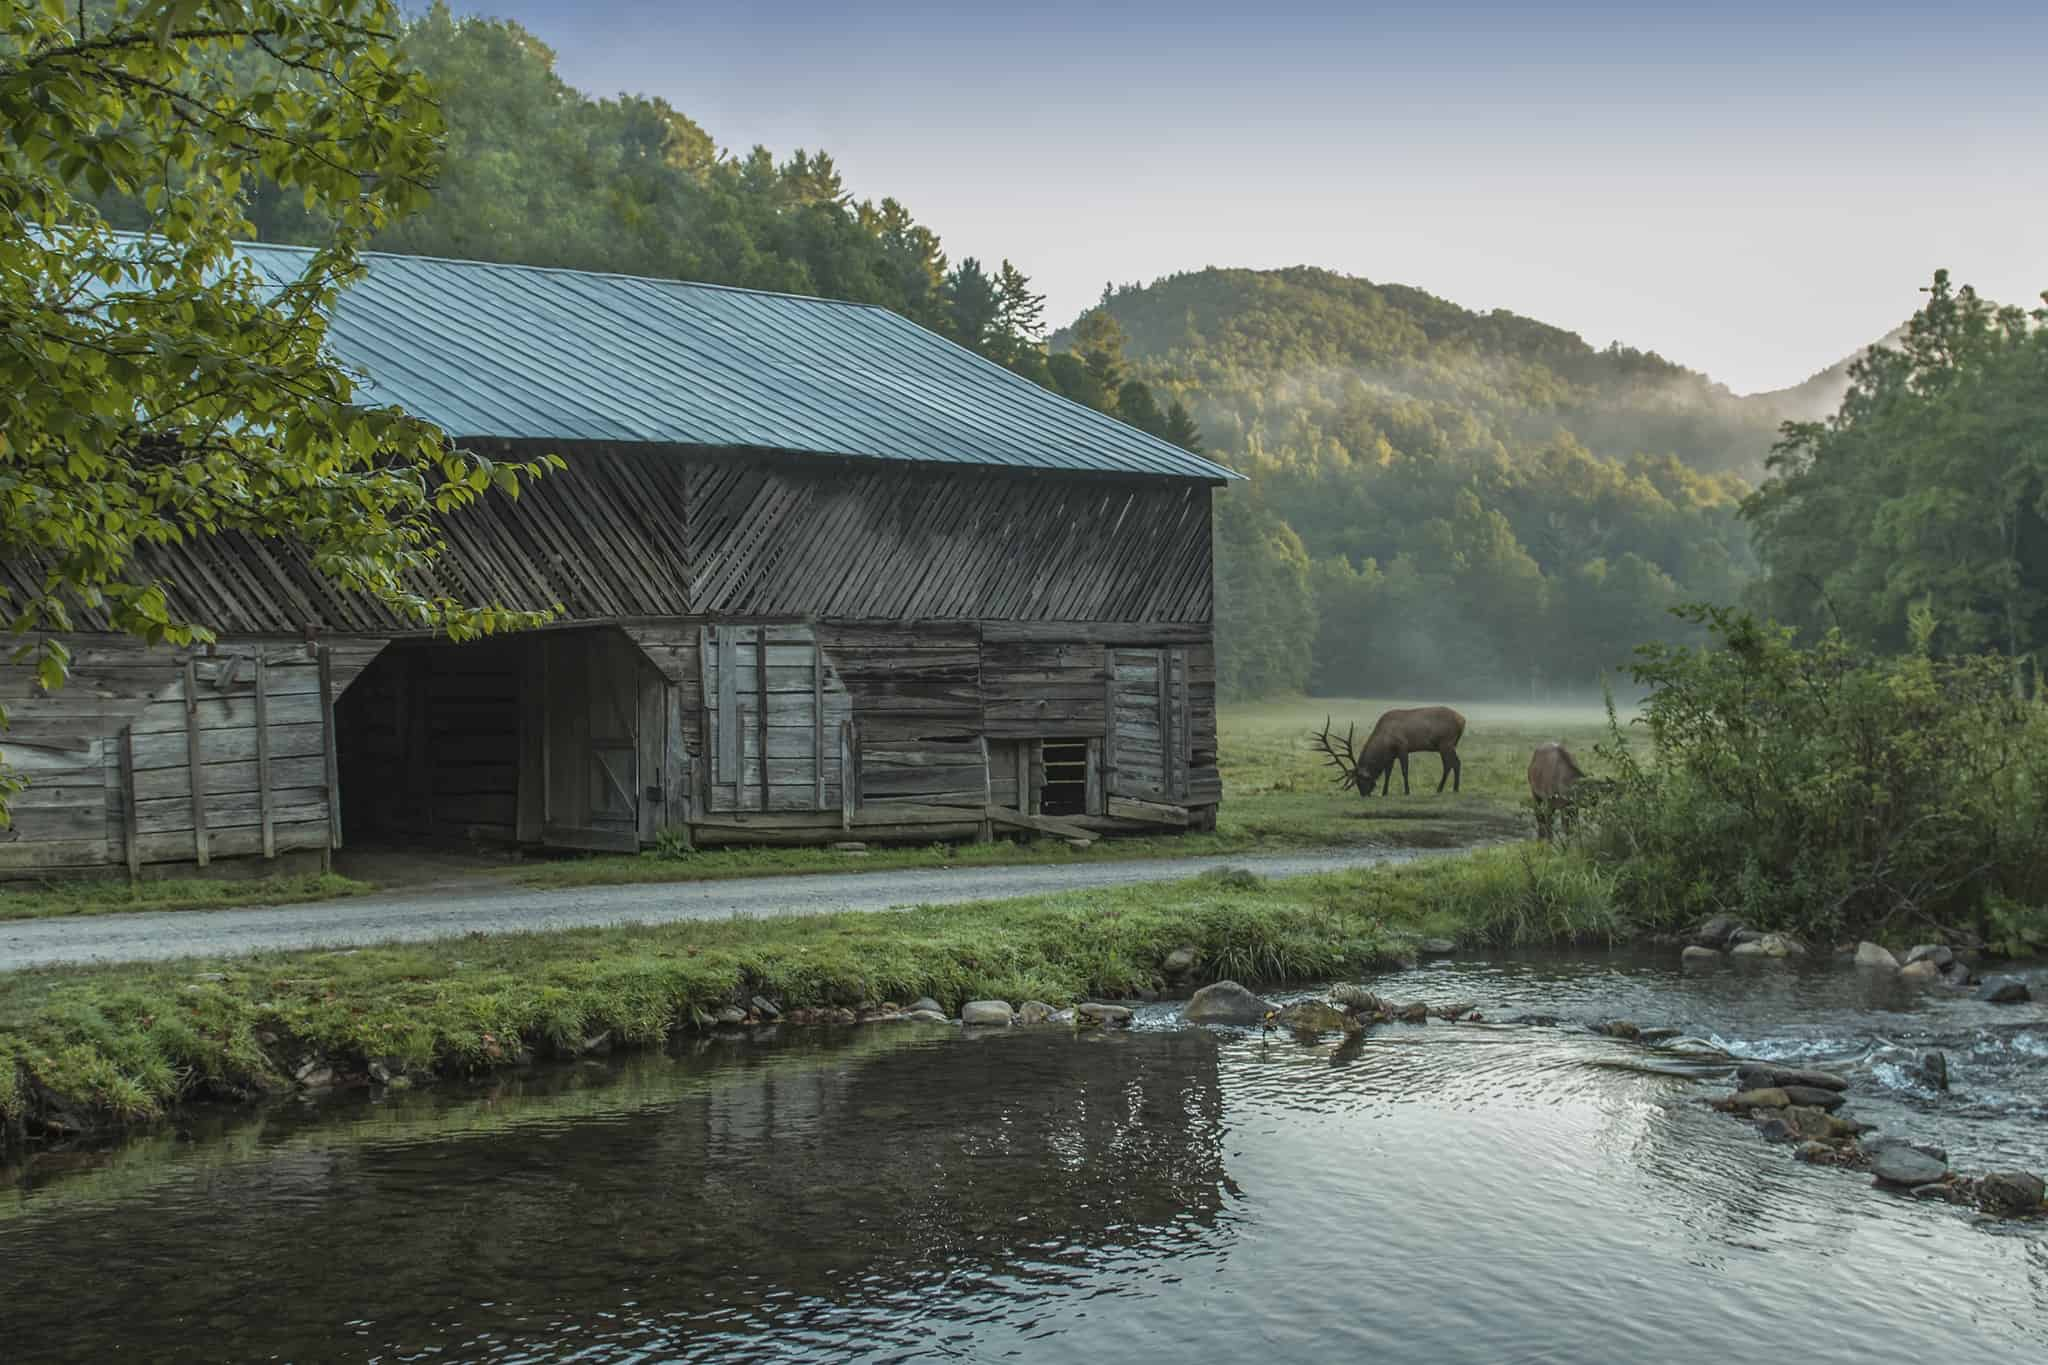 Elk grazing at Cataloochee Valley by an old barn | Photo by Roy Walter